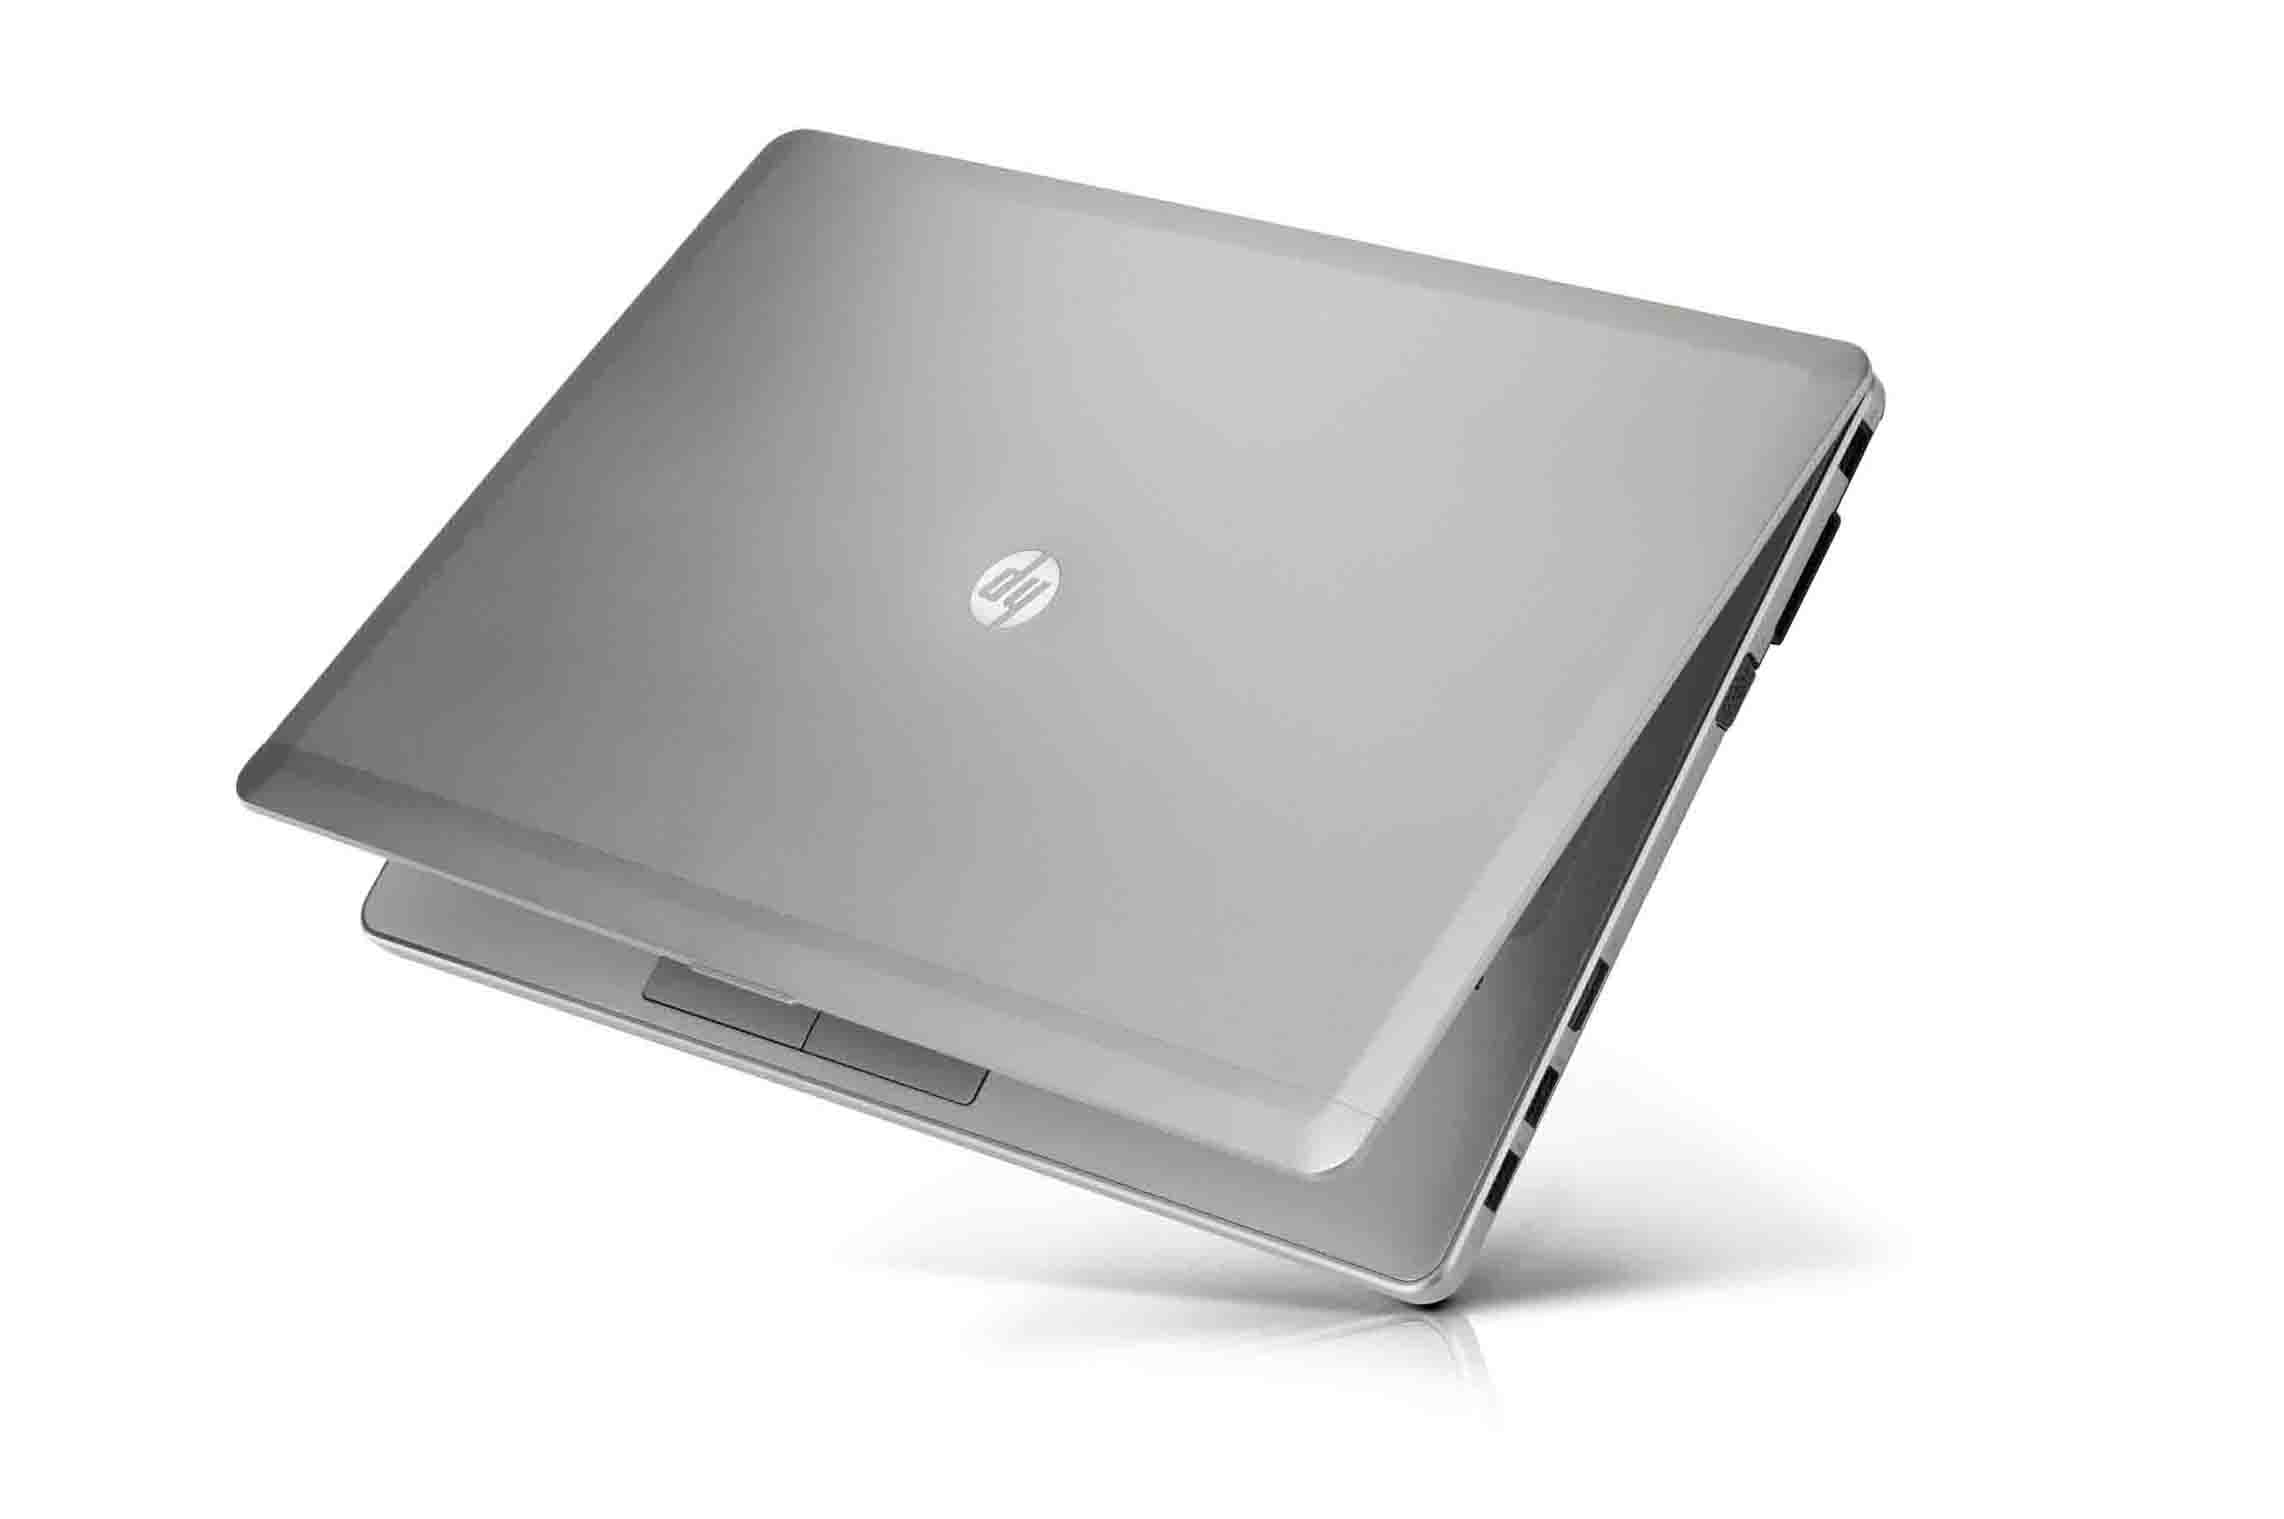 hp probook 6470b drivers wifi